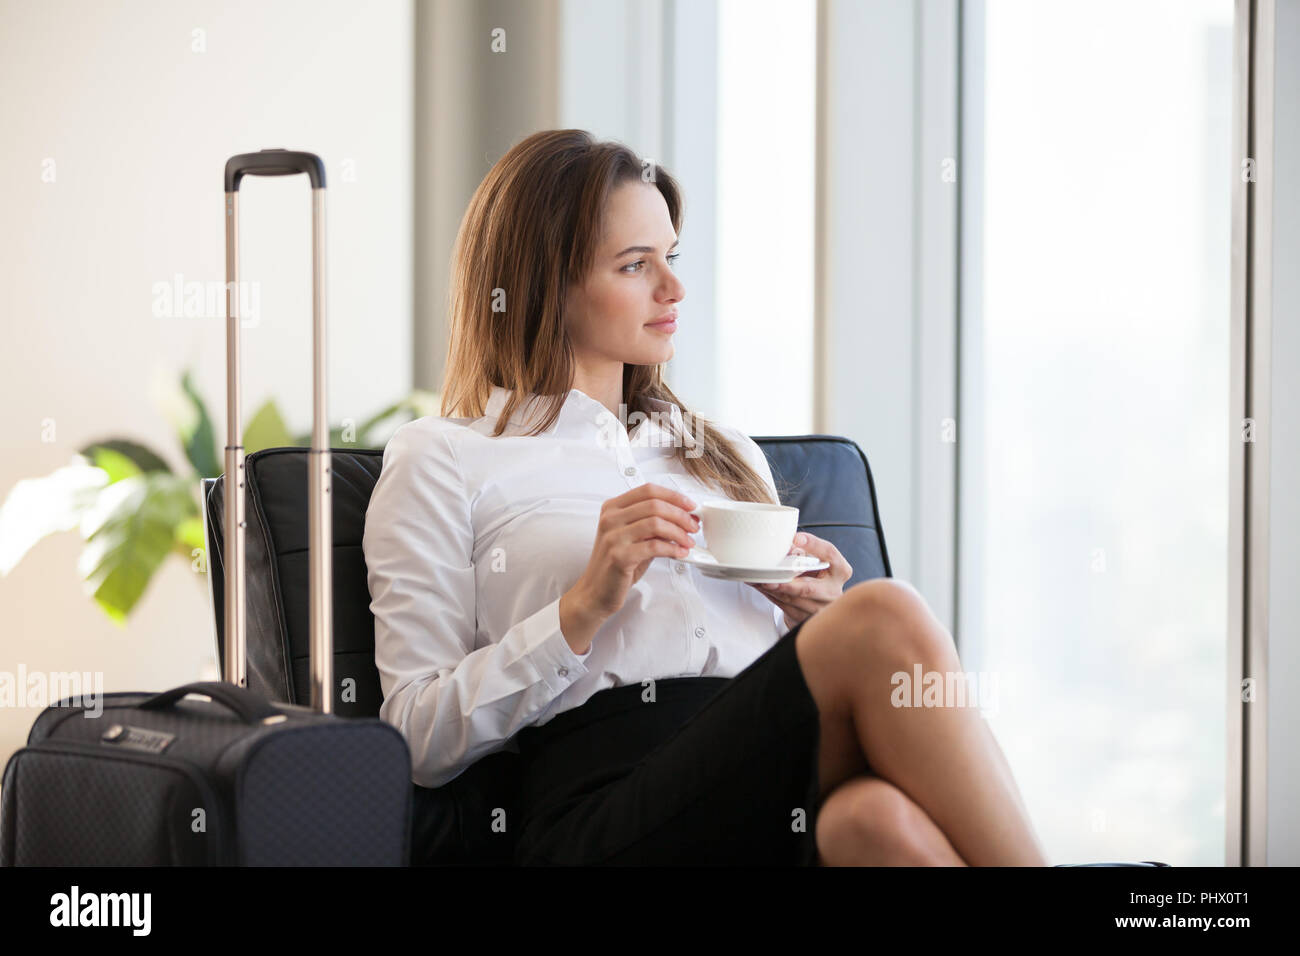 Thoughtful businesswoman drinking coffee with baggage in airport - Stock Image